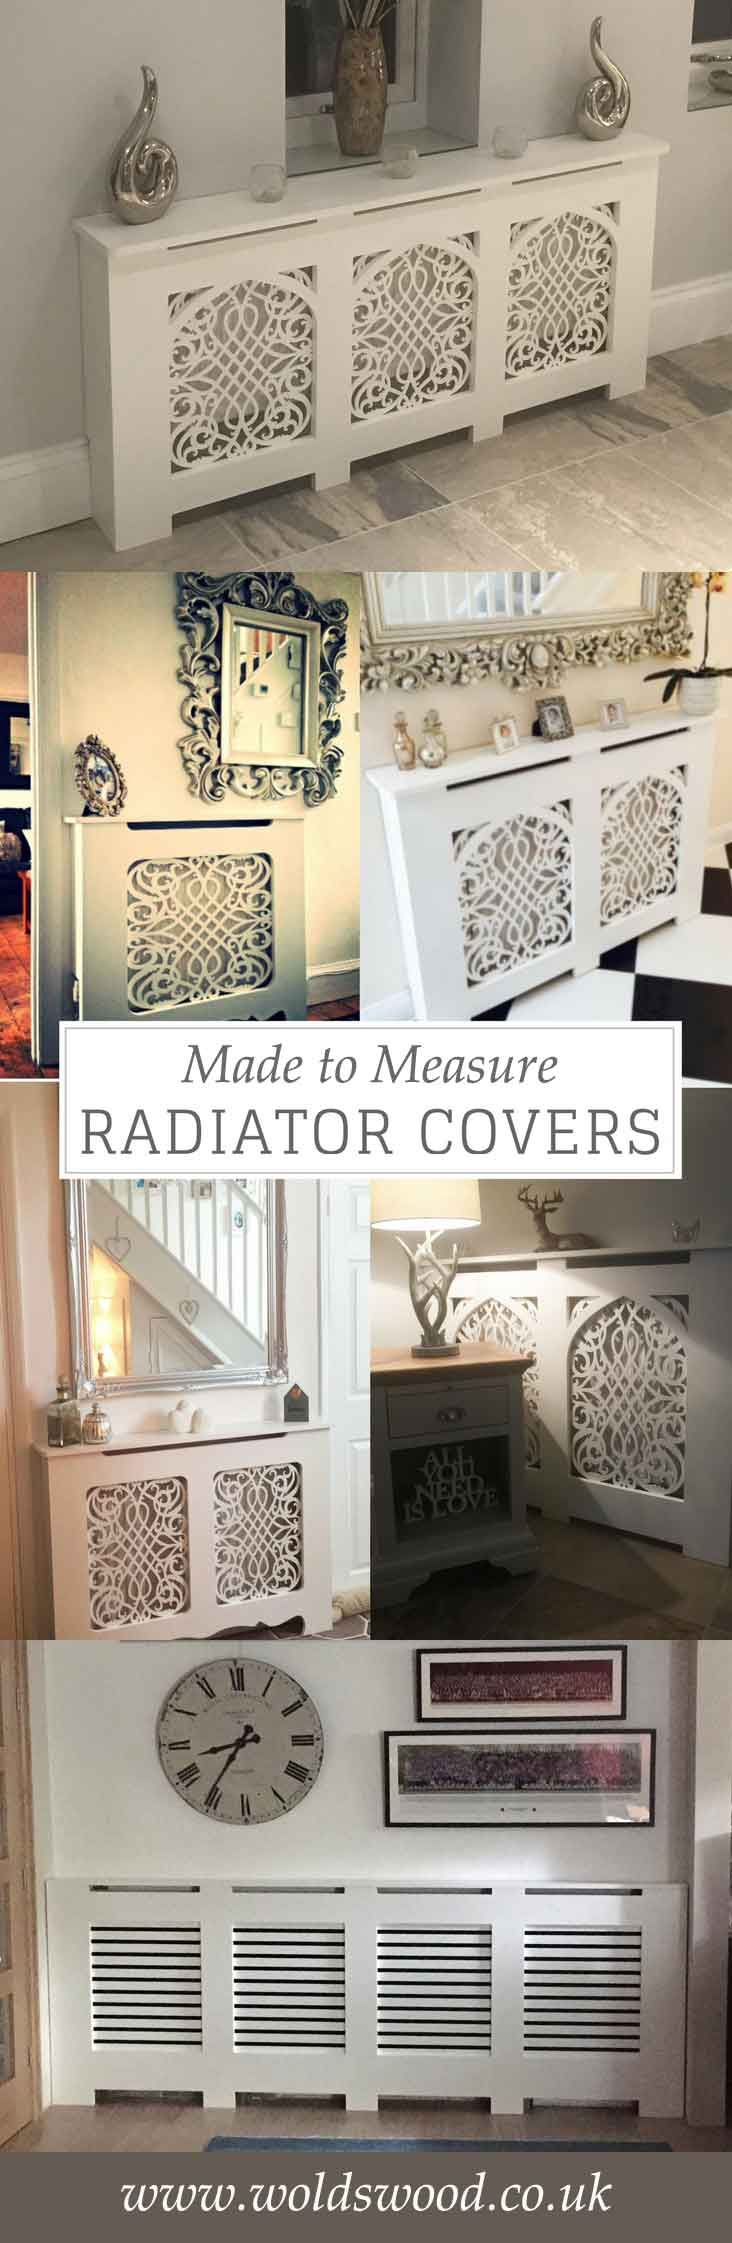 custom made radiator covers behind the scenes shabby chic decor living roomfrench - Interior Design Ideas For Kitchen And Living Room